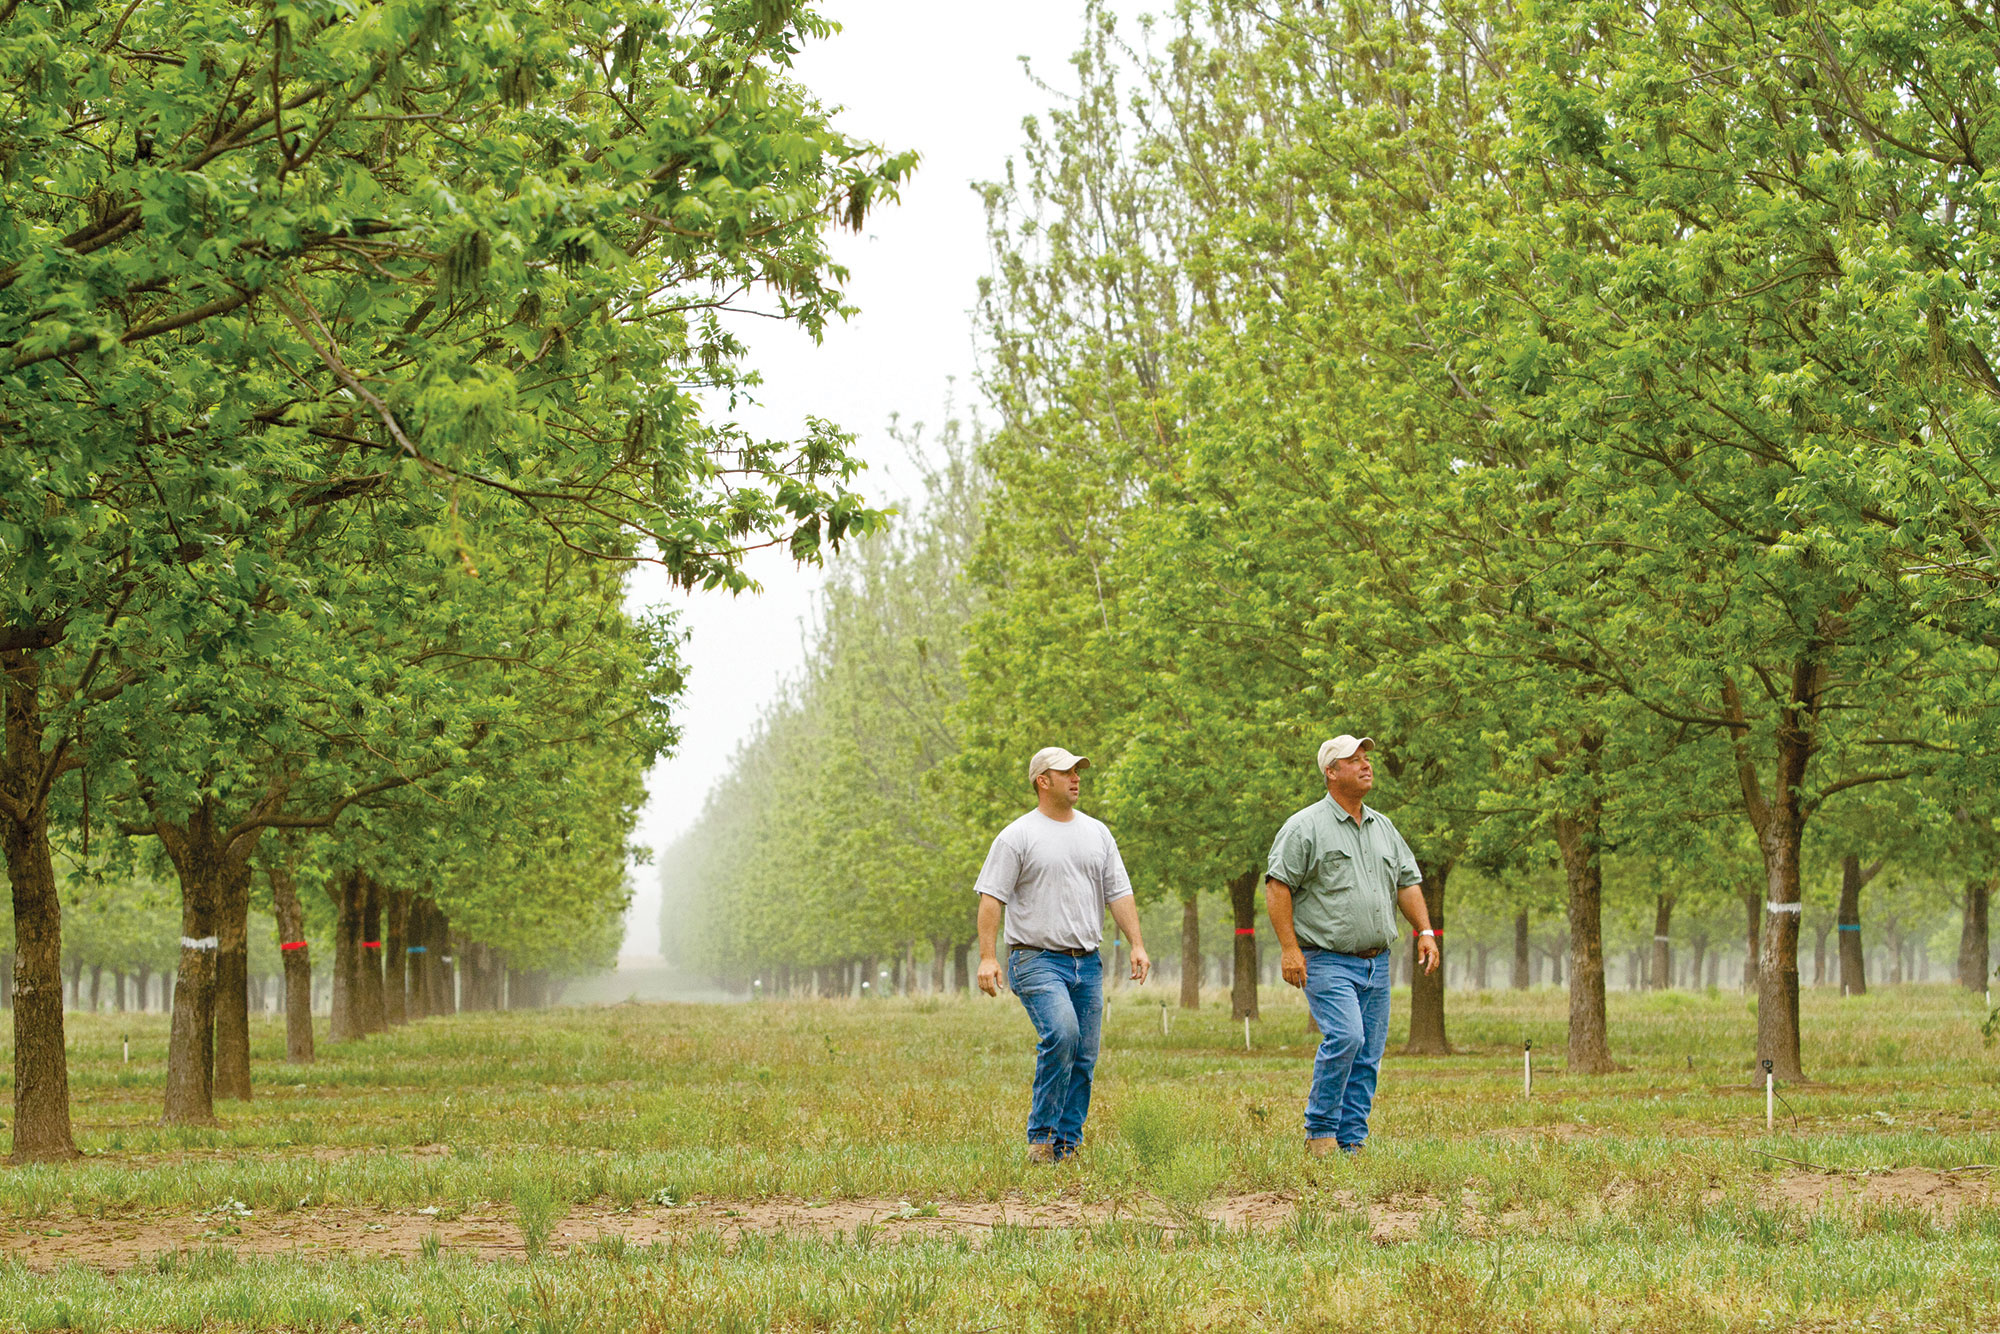 Pecan farmers in the orchard